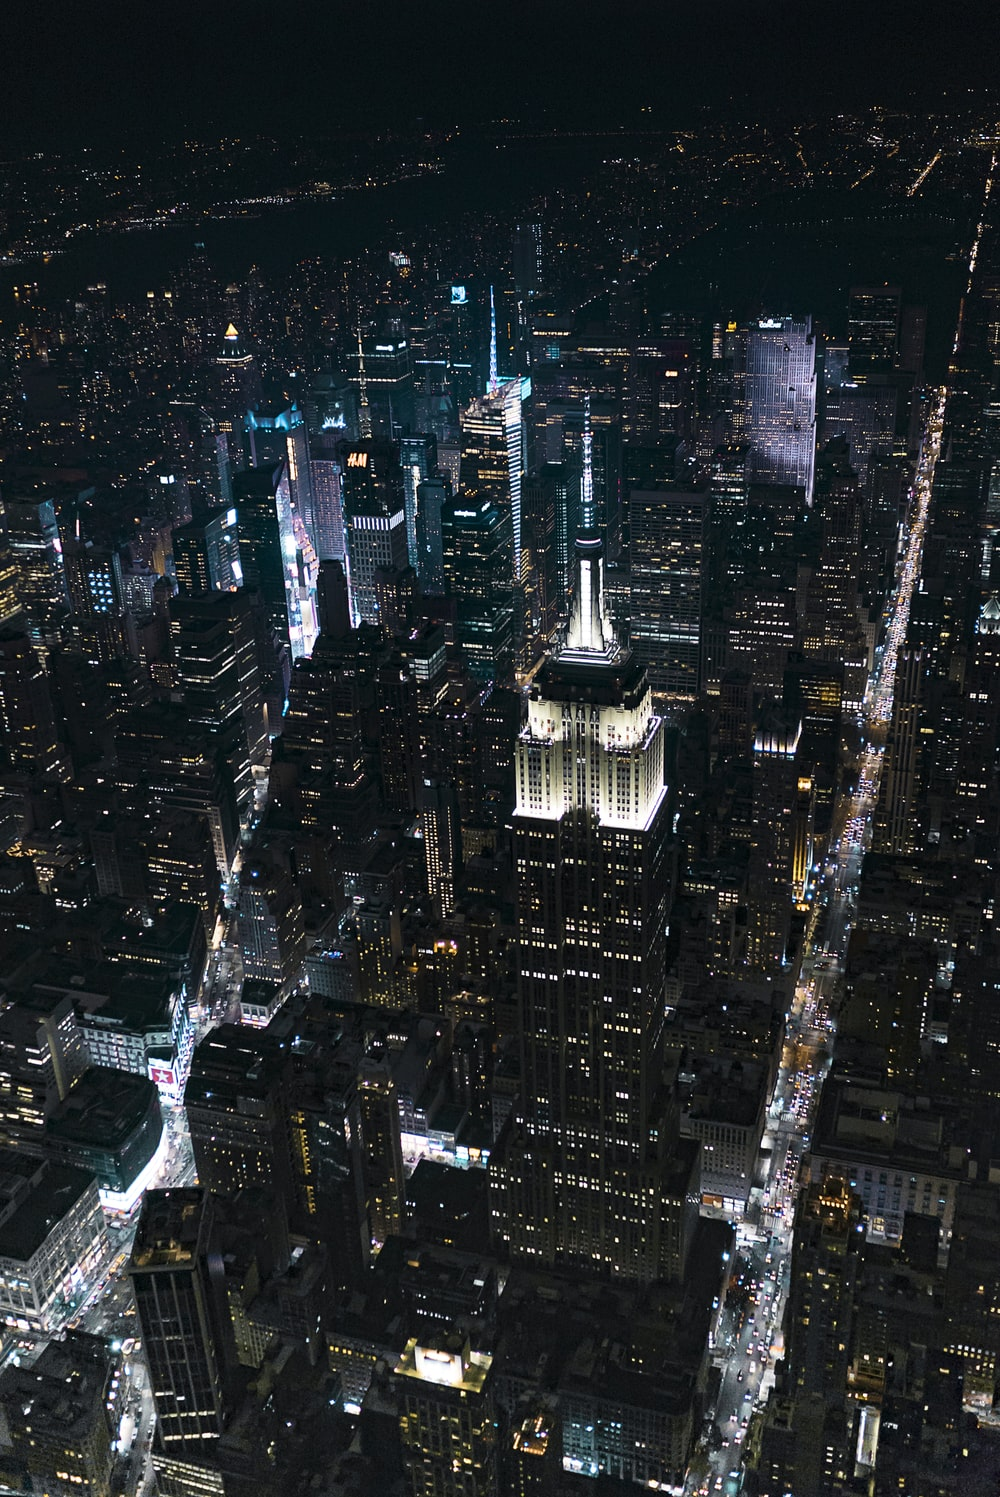 aerial view of city lights and